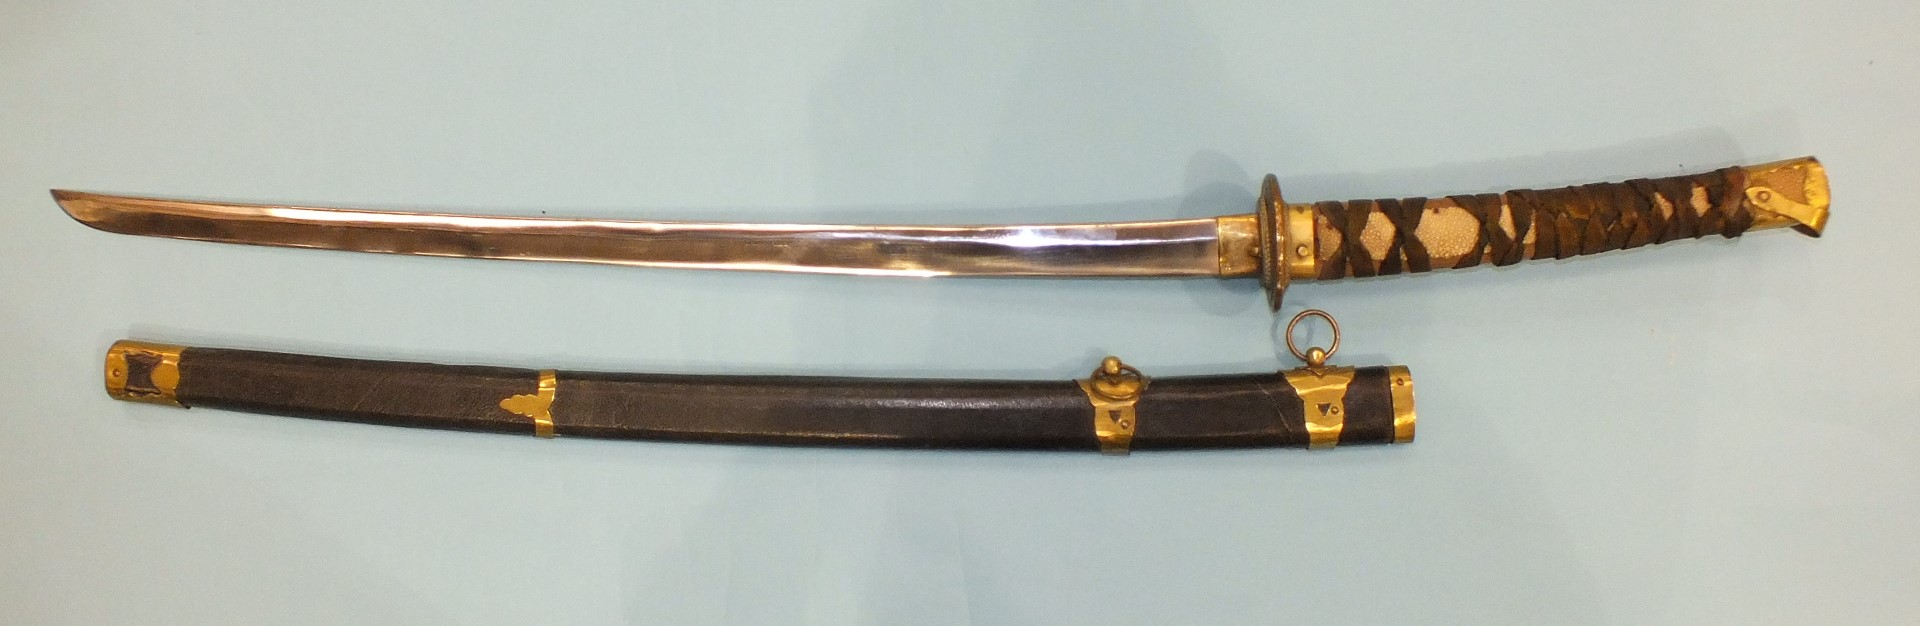 Lot 224 - A Japanese sword, with stainless steel blade (26cm) and partially-covered fish-skin-bound grip, with